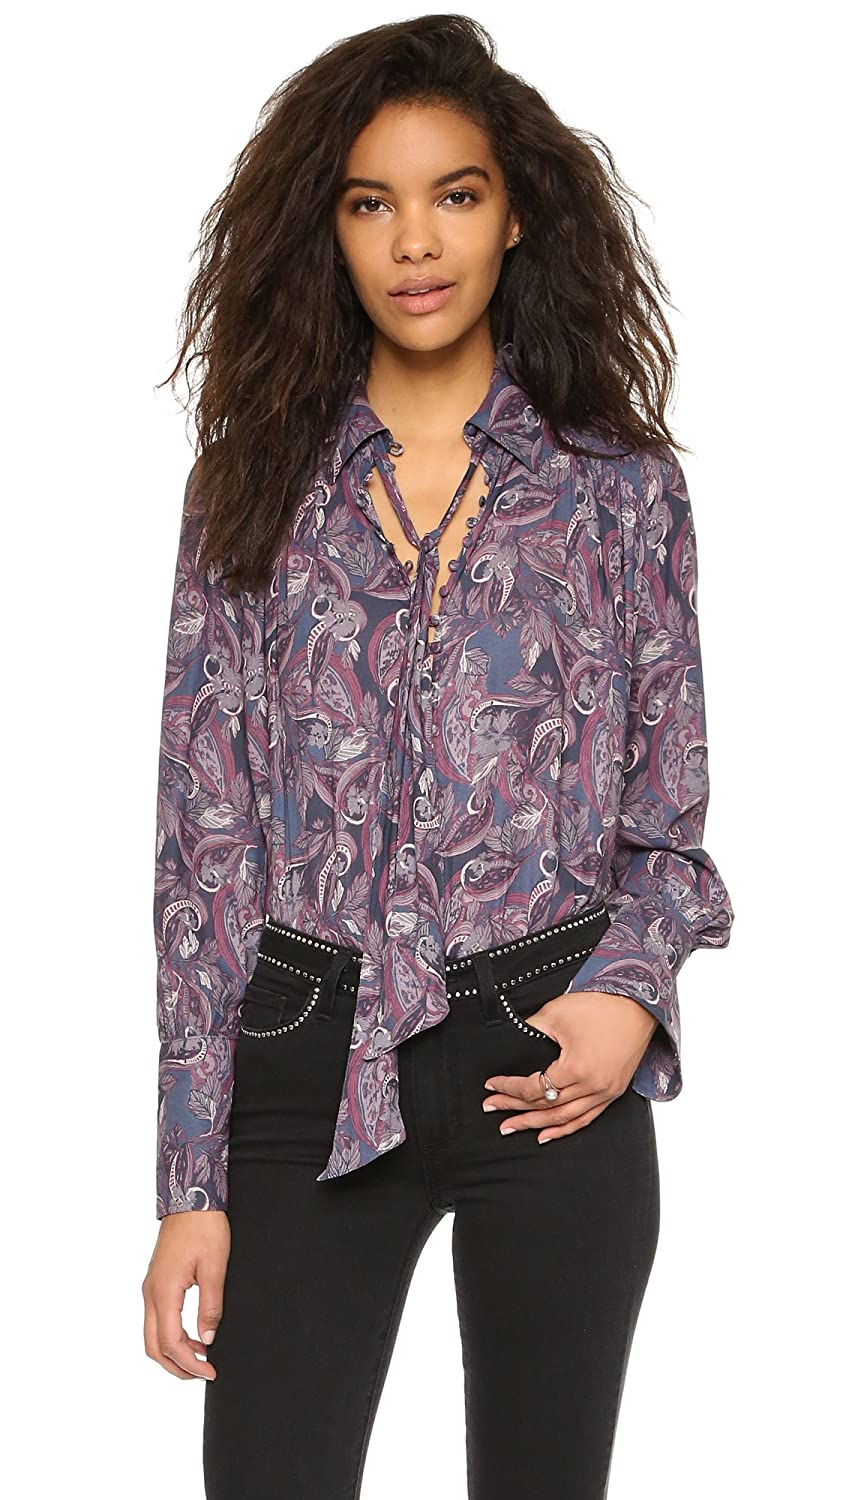 Free People Women's Modern Muse Tie Front Top, Purple Combo